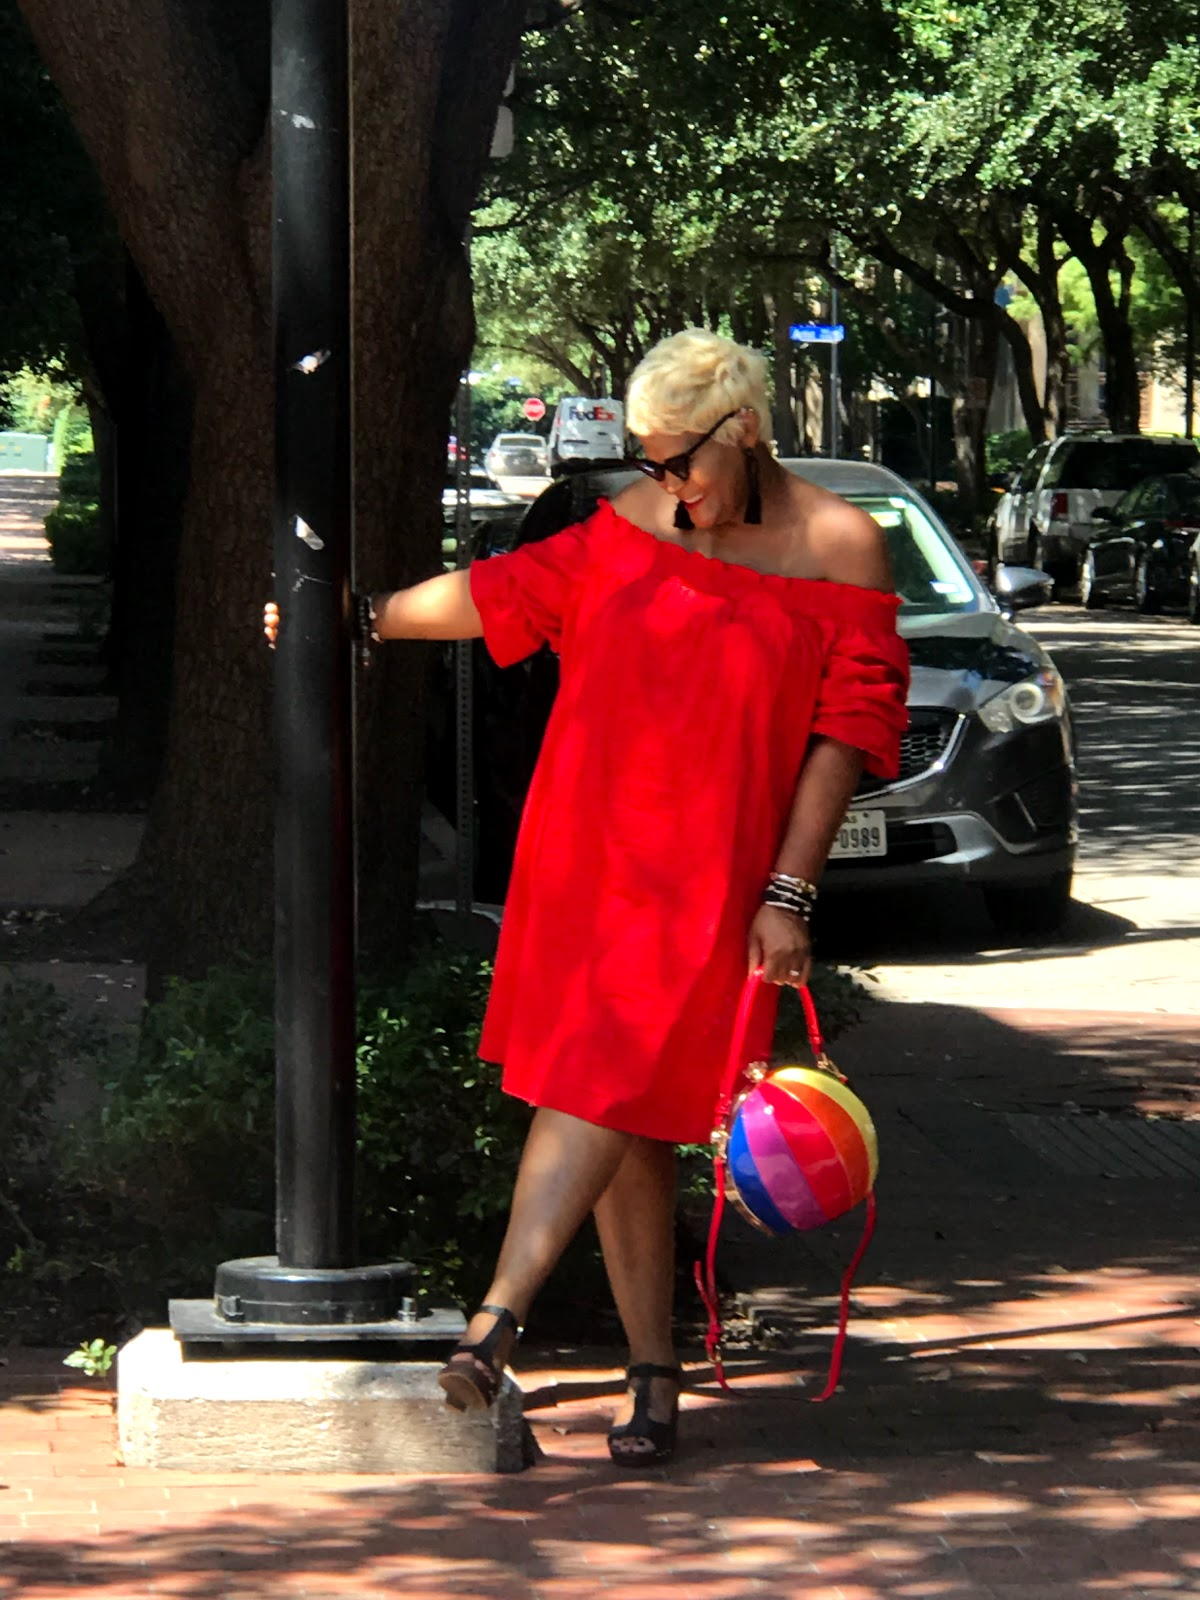 Image:Woman wearing Red dress posing in outfit with balloon purse. Seen first on Bits Babbles by Tangie Bell- Judge my style